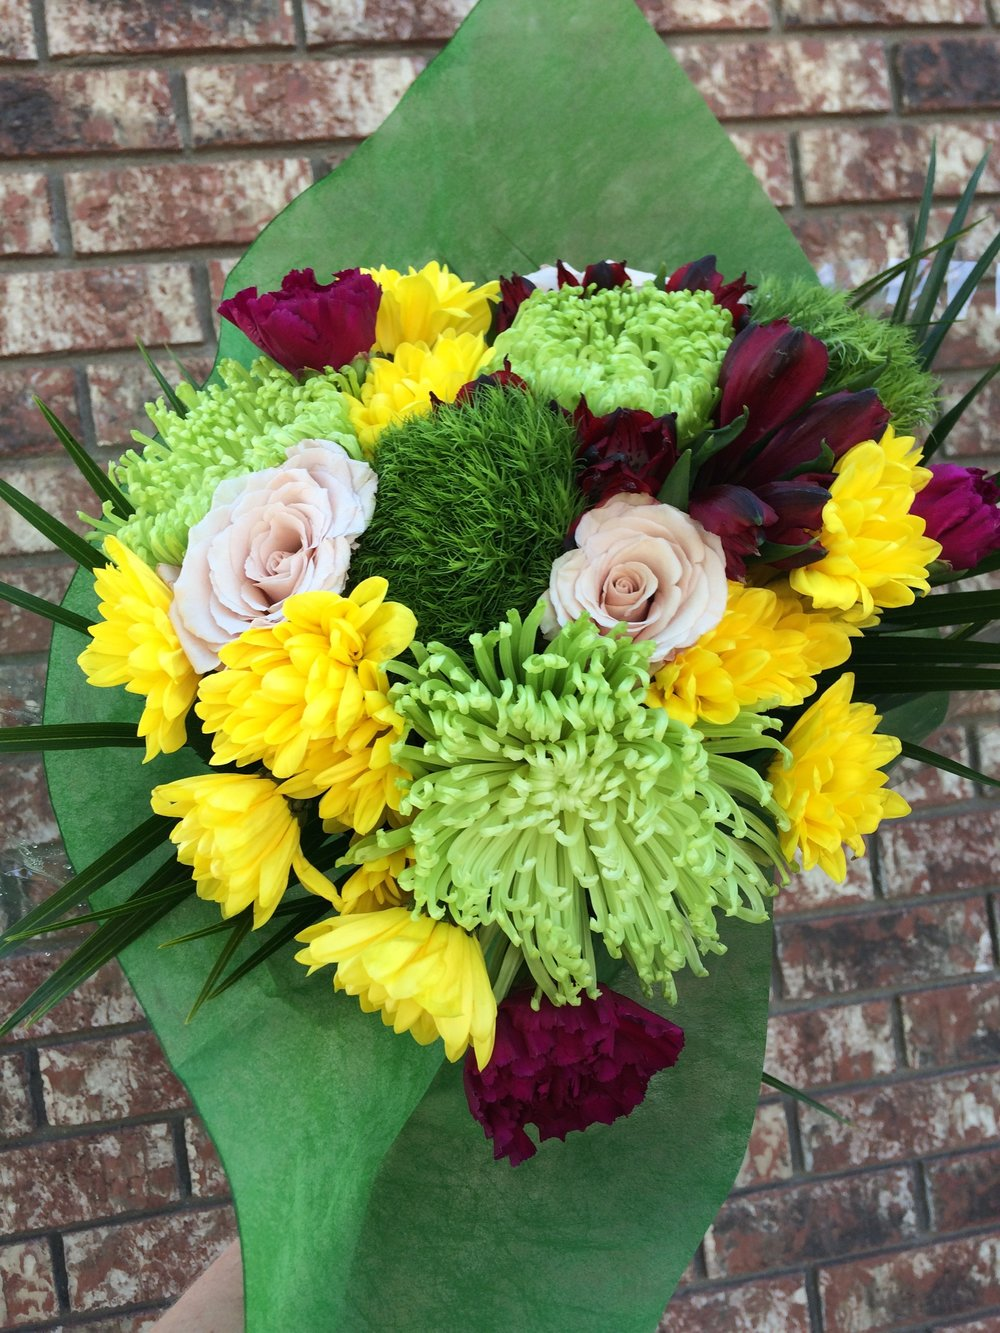 Pop-up at Italian Star Deli - Friday, July 14, 201712 noon - 1:00 pmBouquets for $22